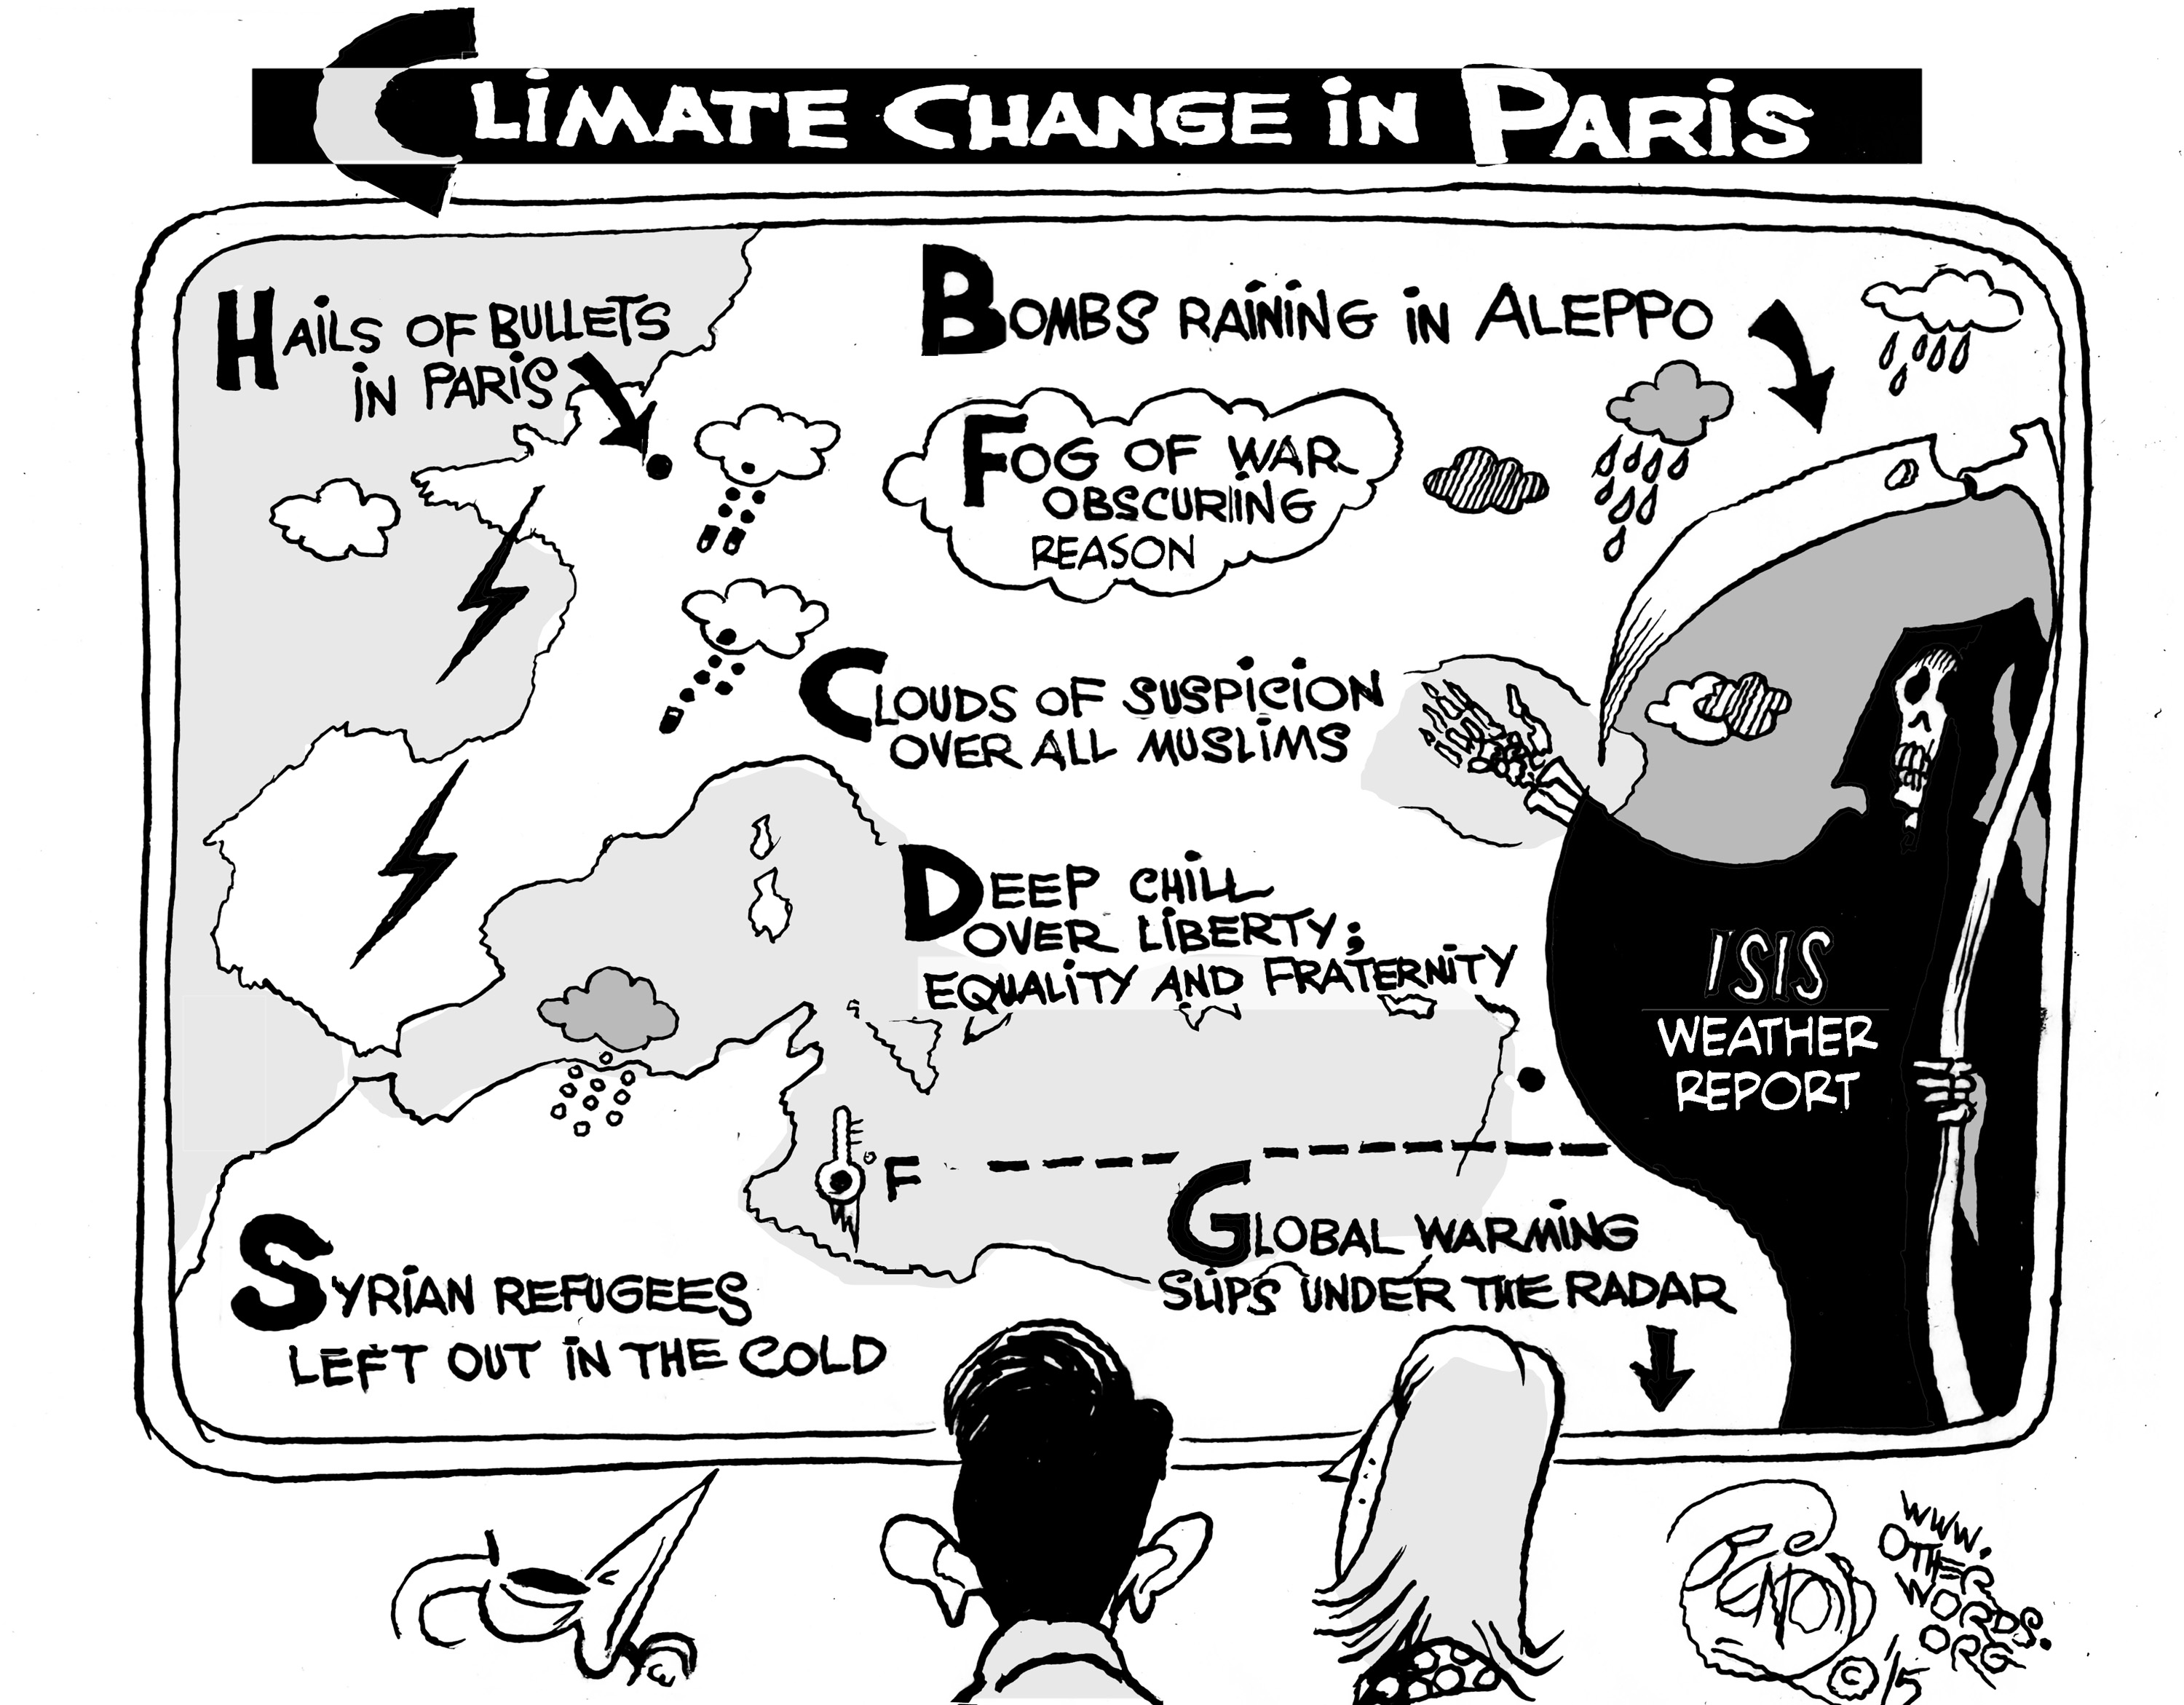 Climate Change in Paris